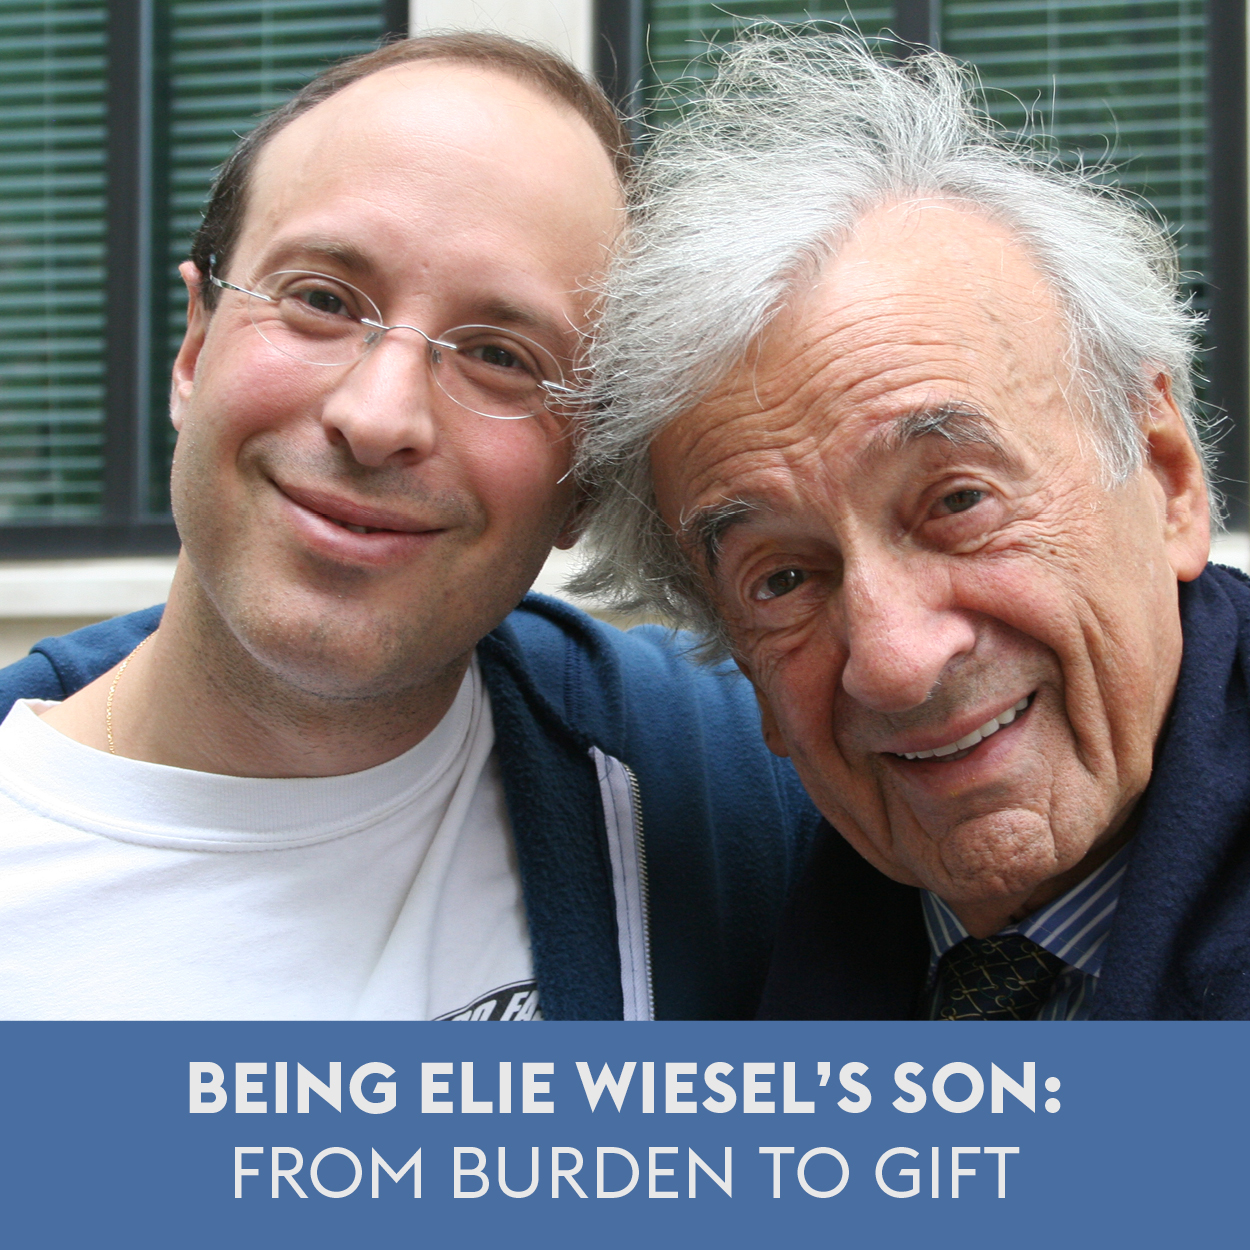 Image is of Elie Wiesel and his son, Elisha Wiesel. Text reads Being Elie Wiesel's Son: From Burden to Gift